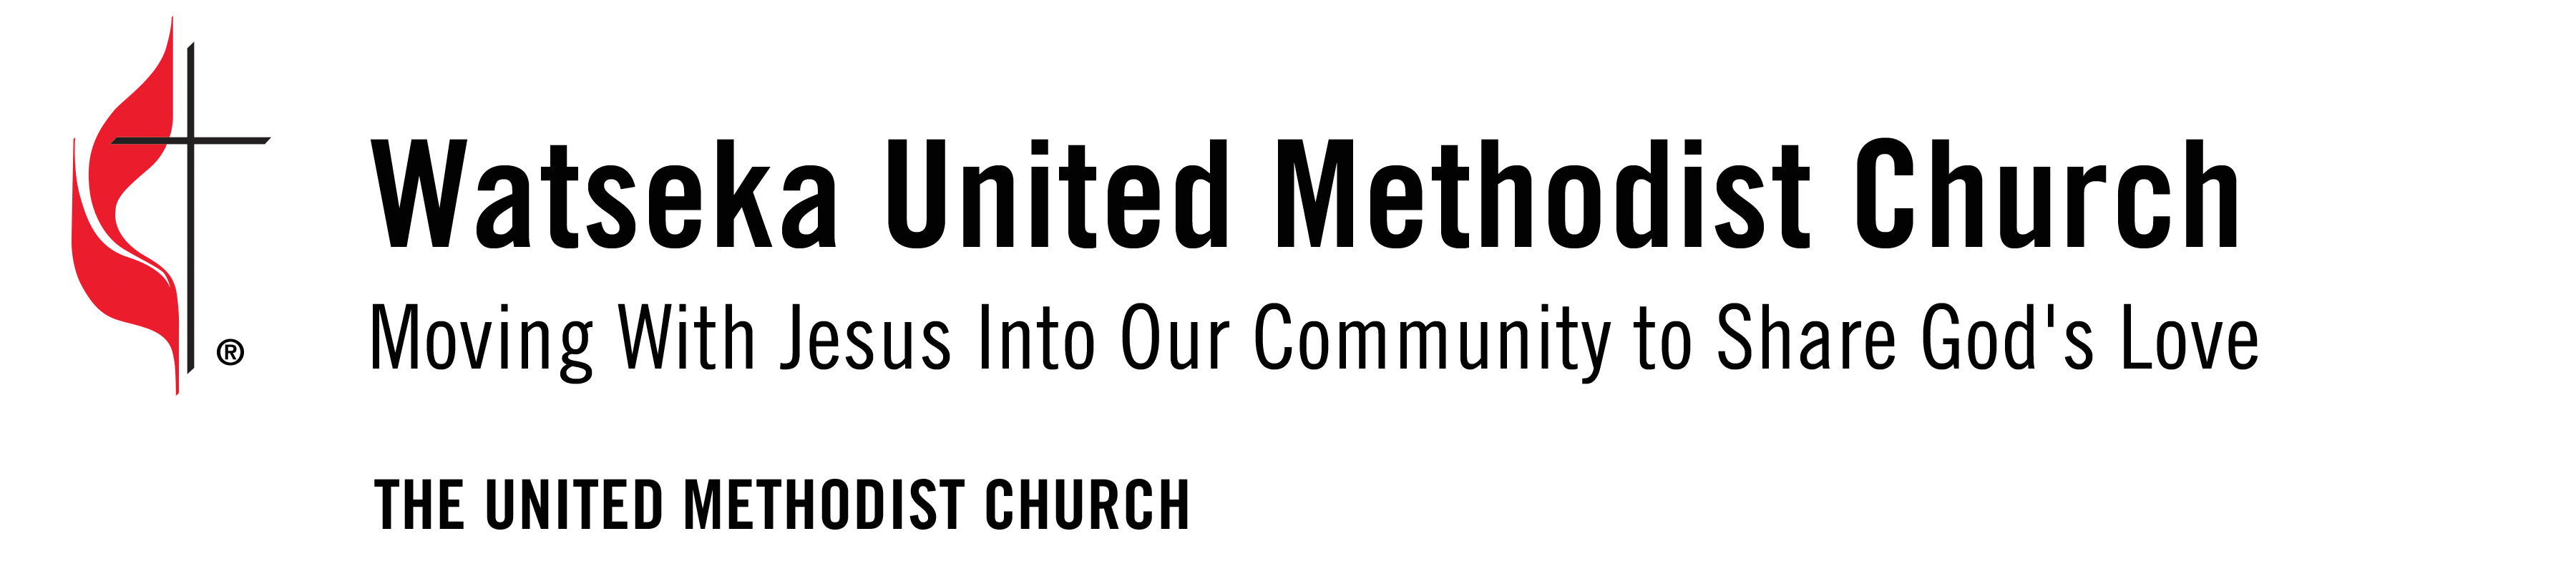 watseka-umc-logo-full-color